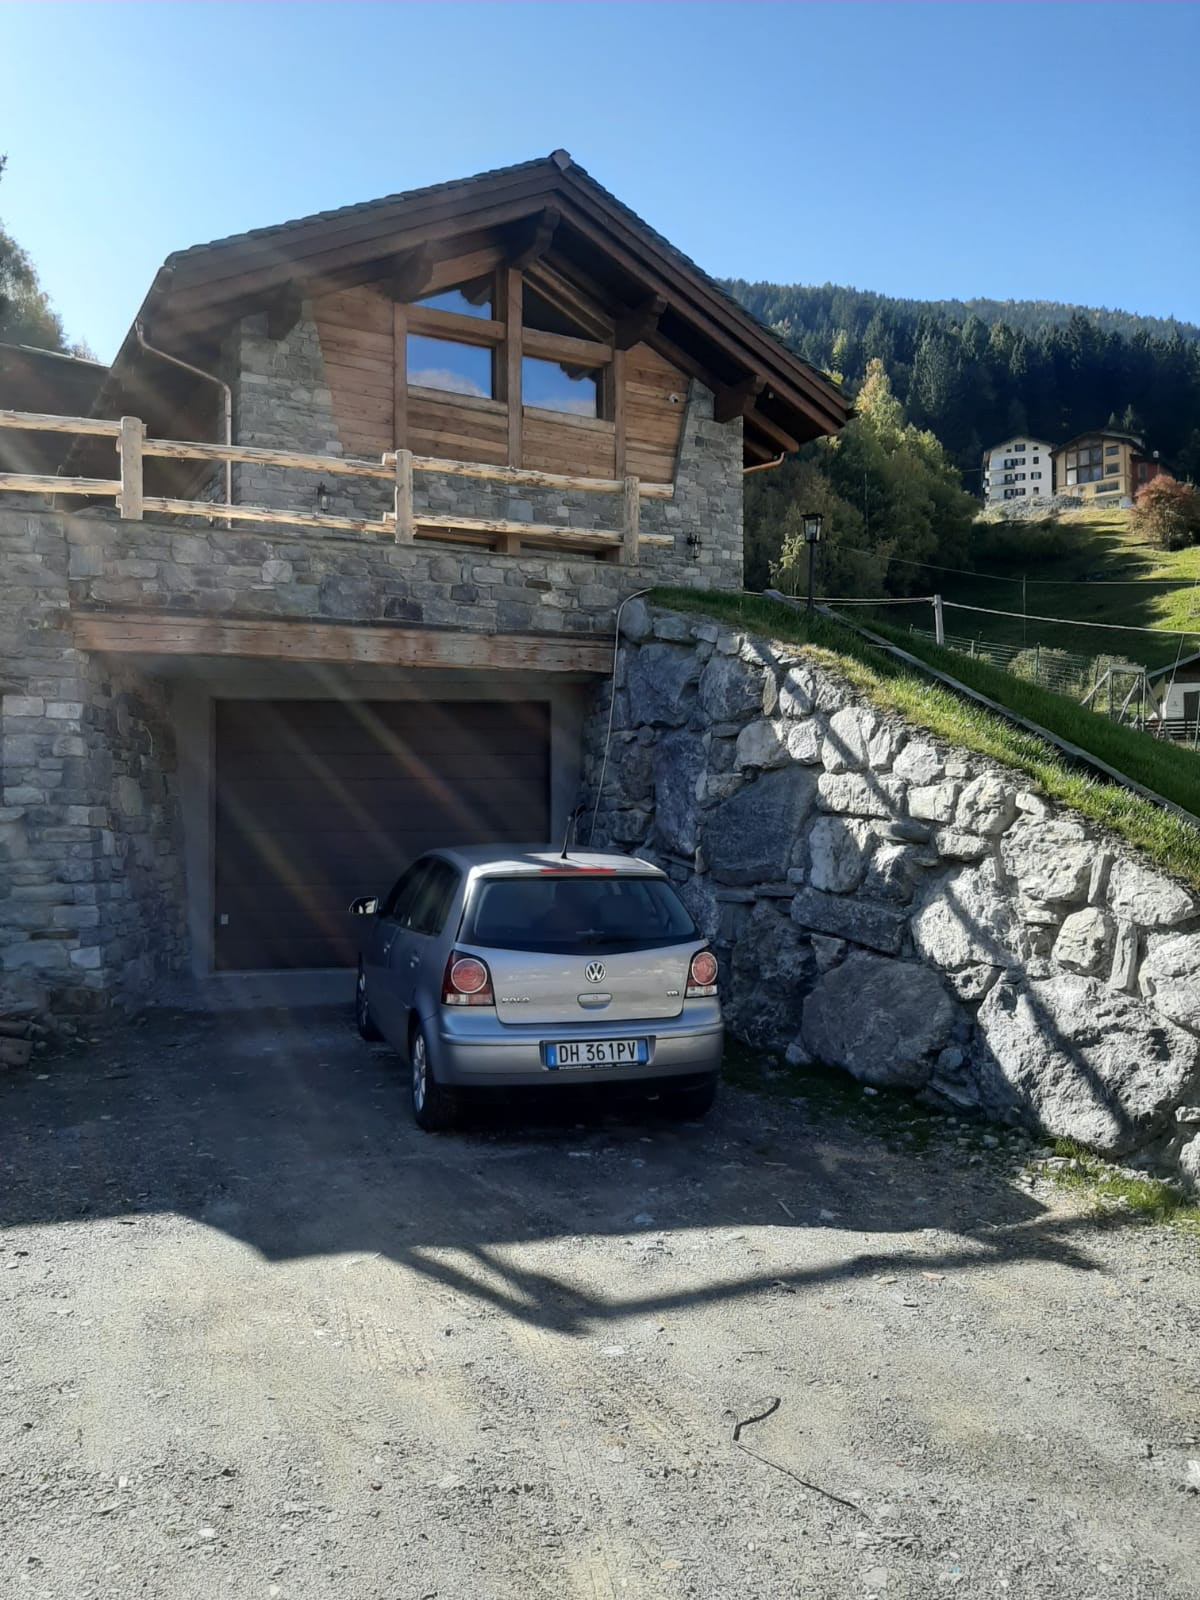 House Exterior Photo Showcasing the Garage and Stairs